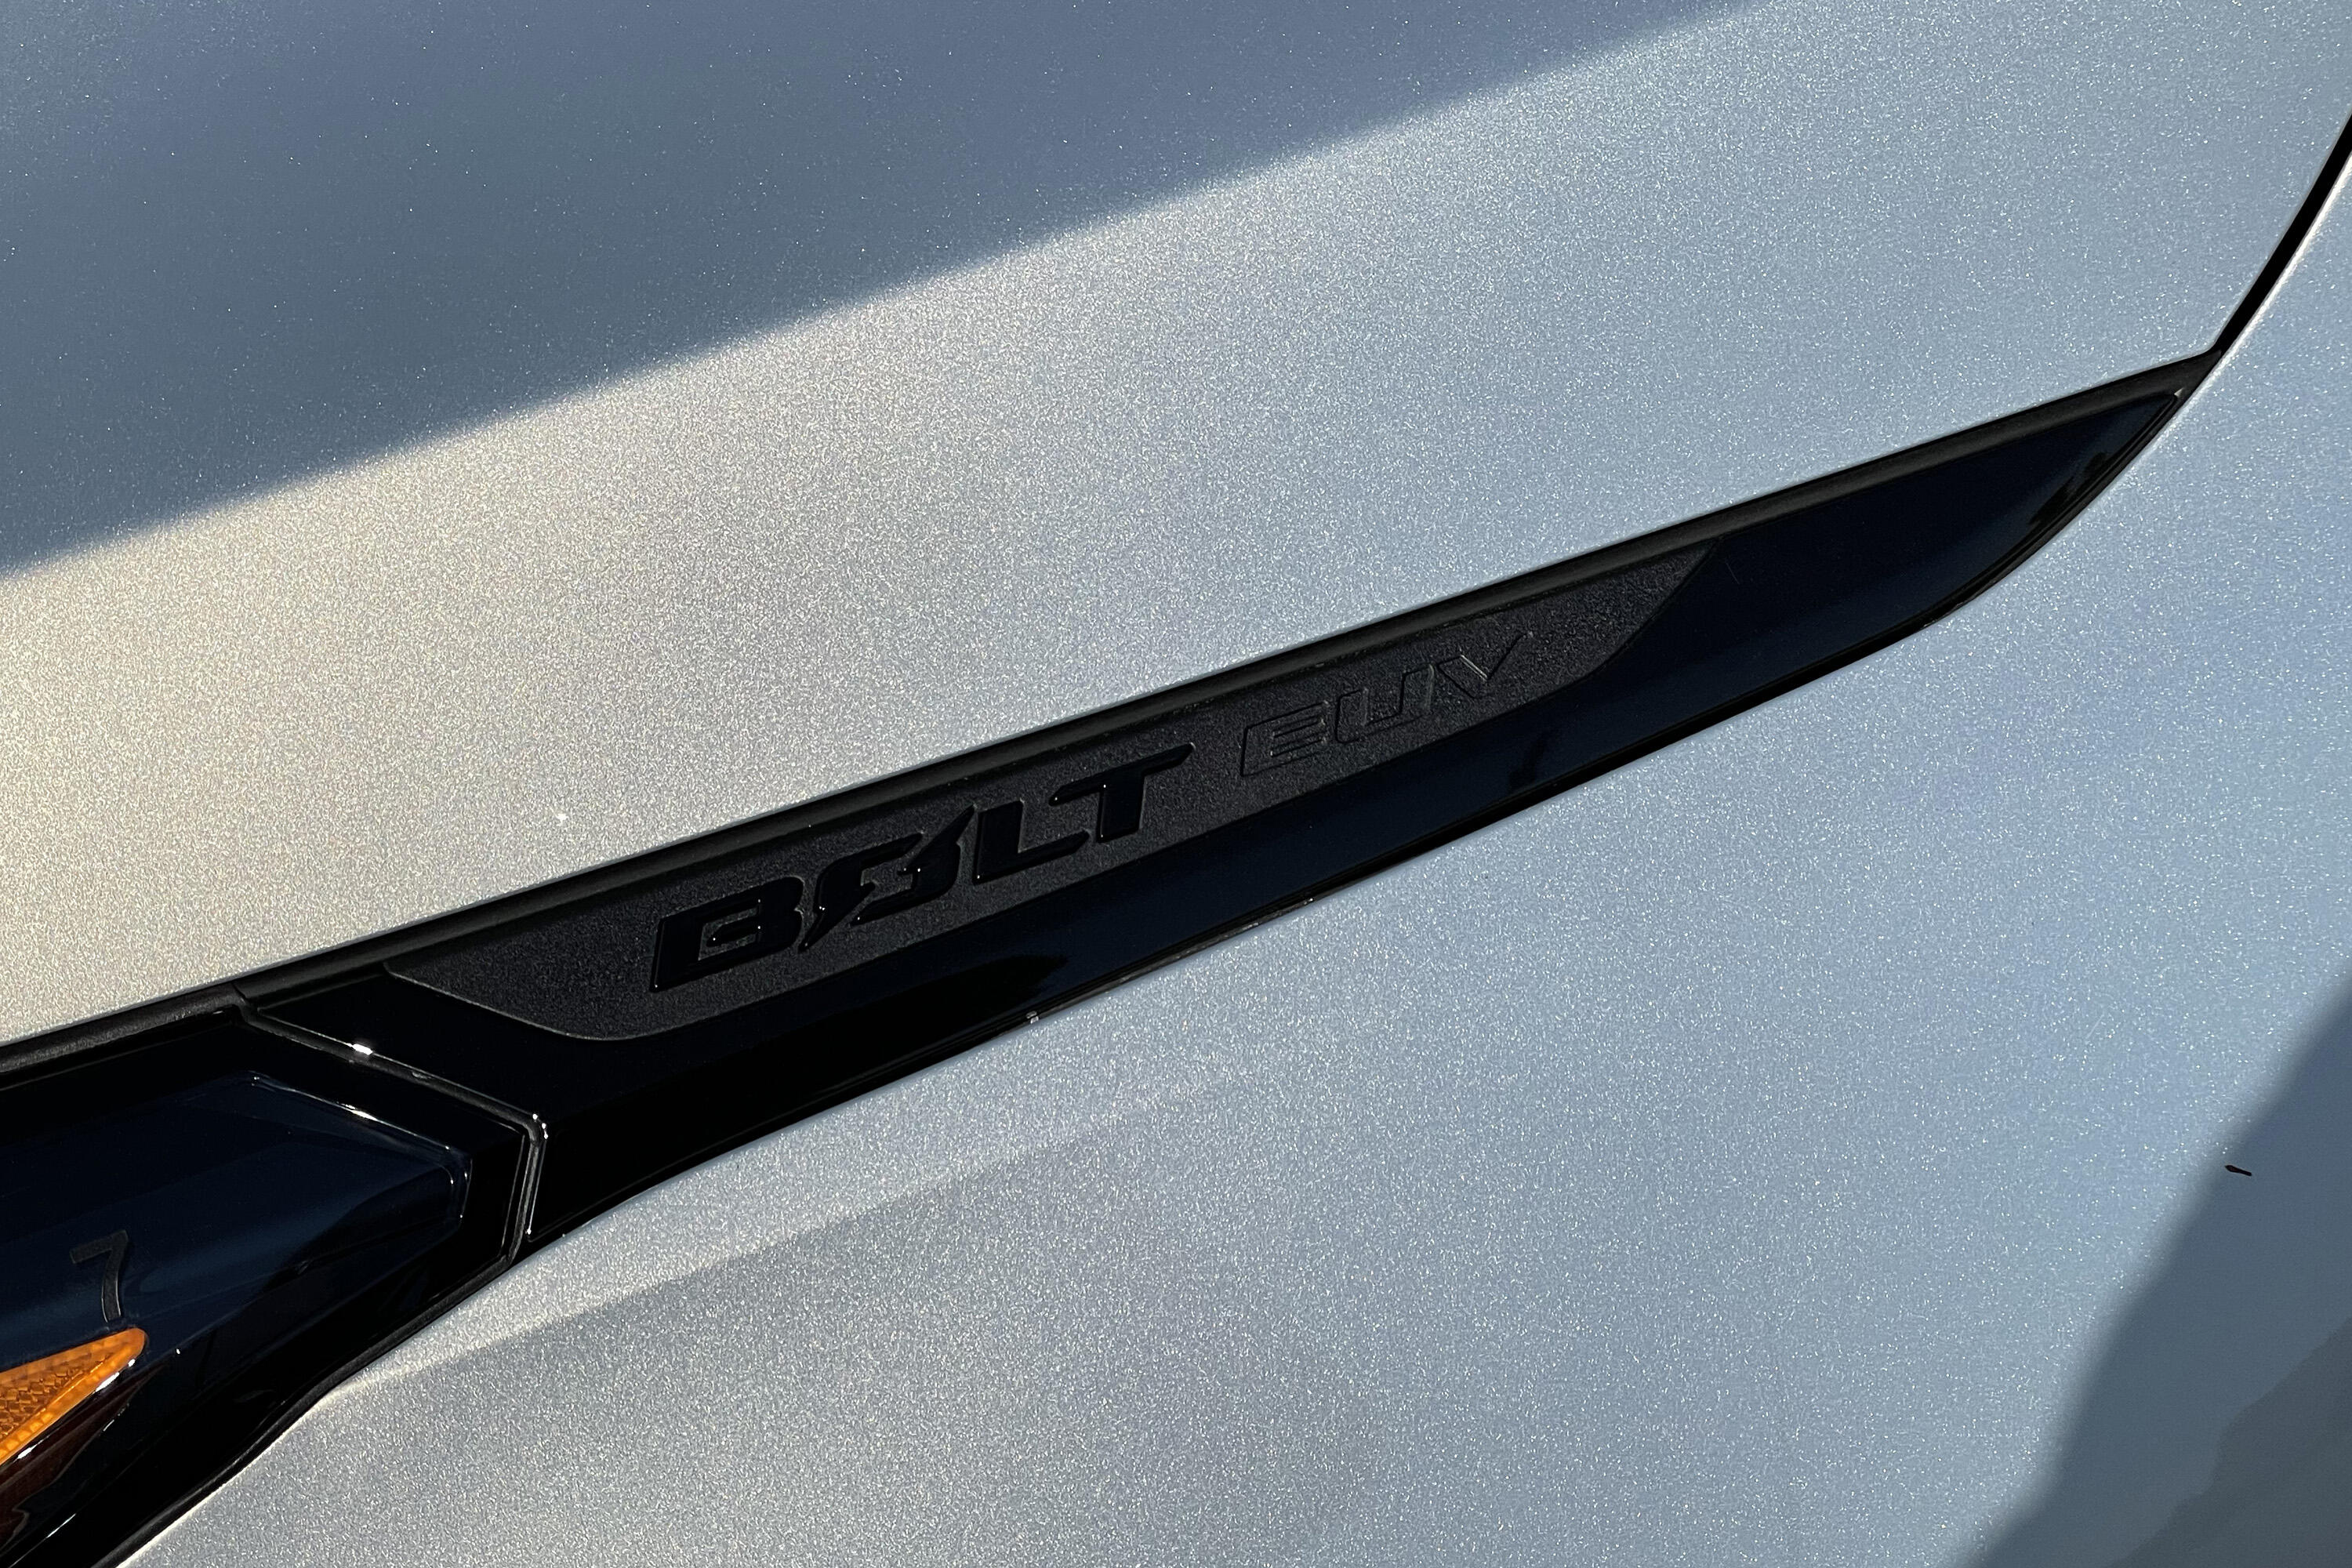 2022 Chevy Bolt EUV